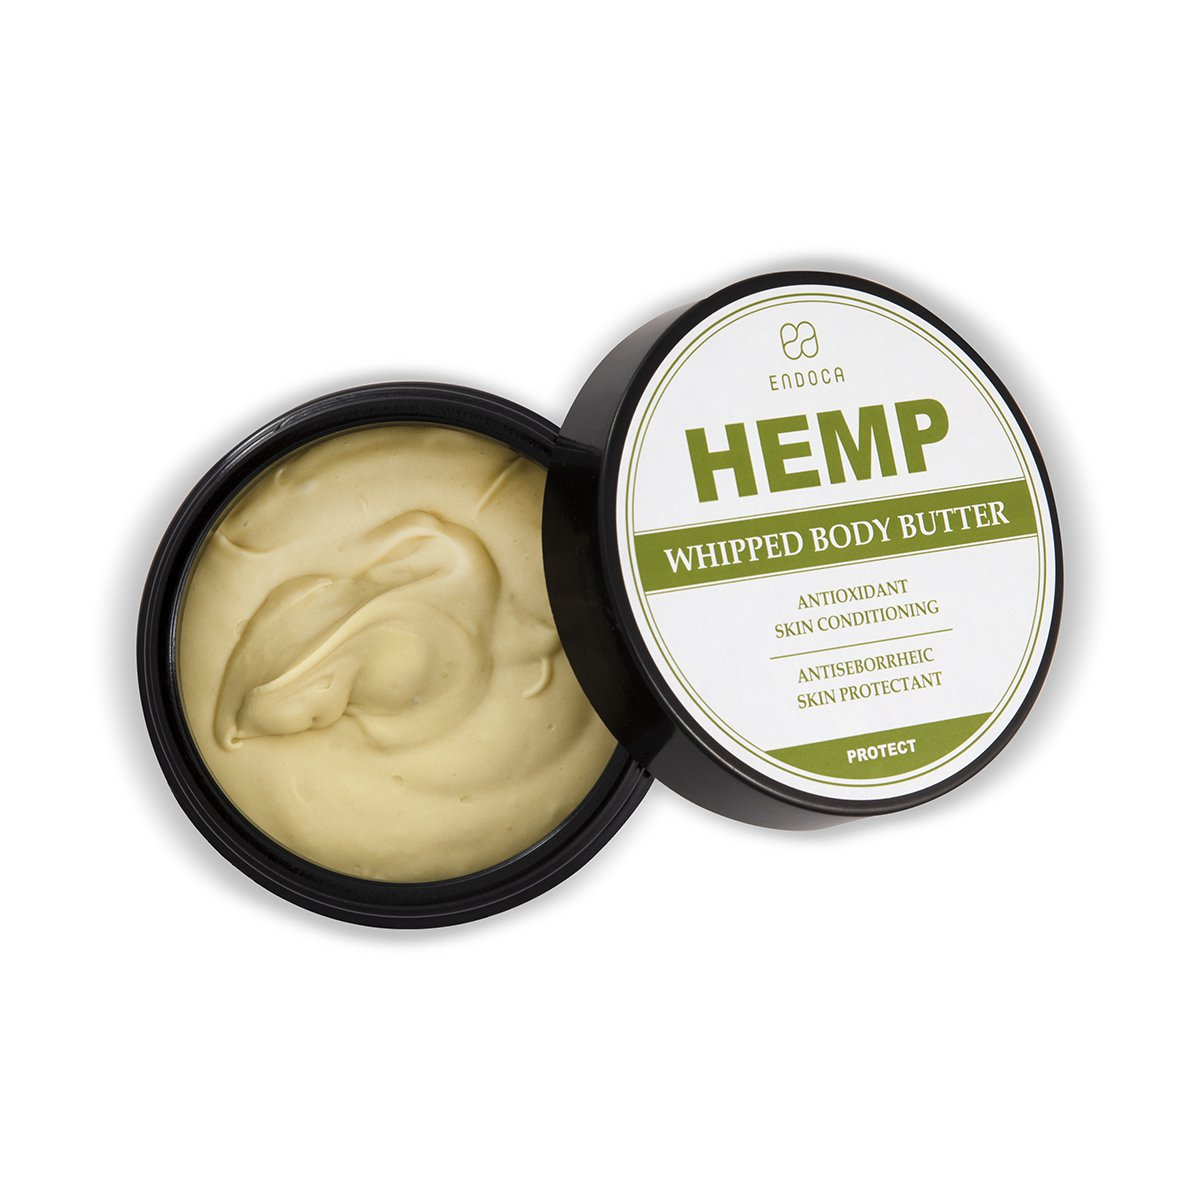 Endoca Whipped Body Butter - Kerwell: Premium CBD House